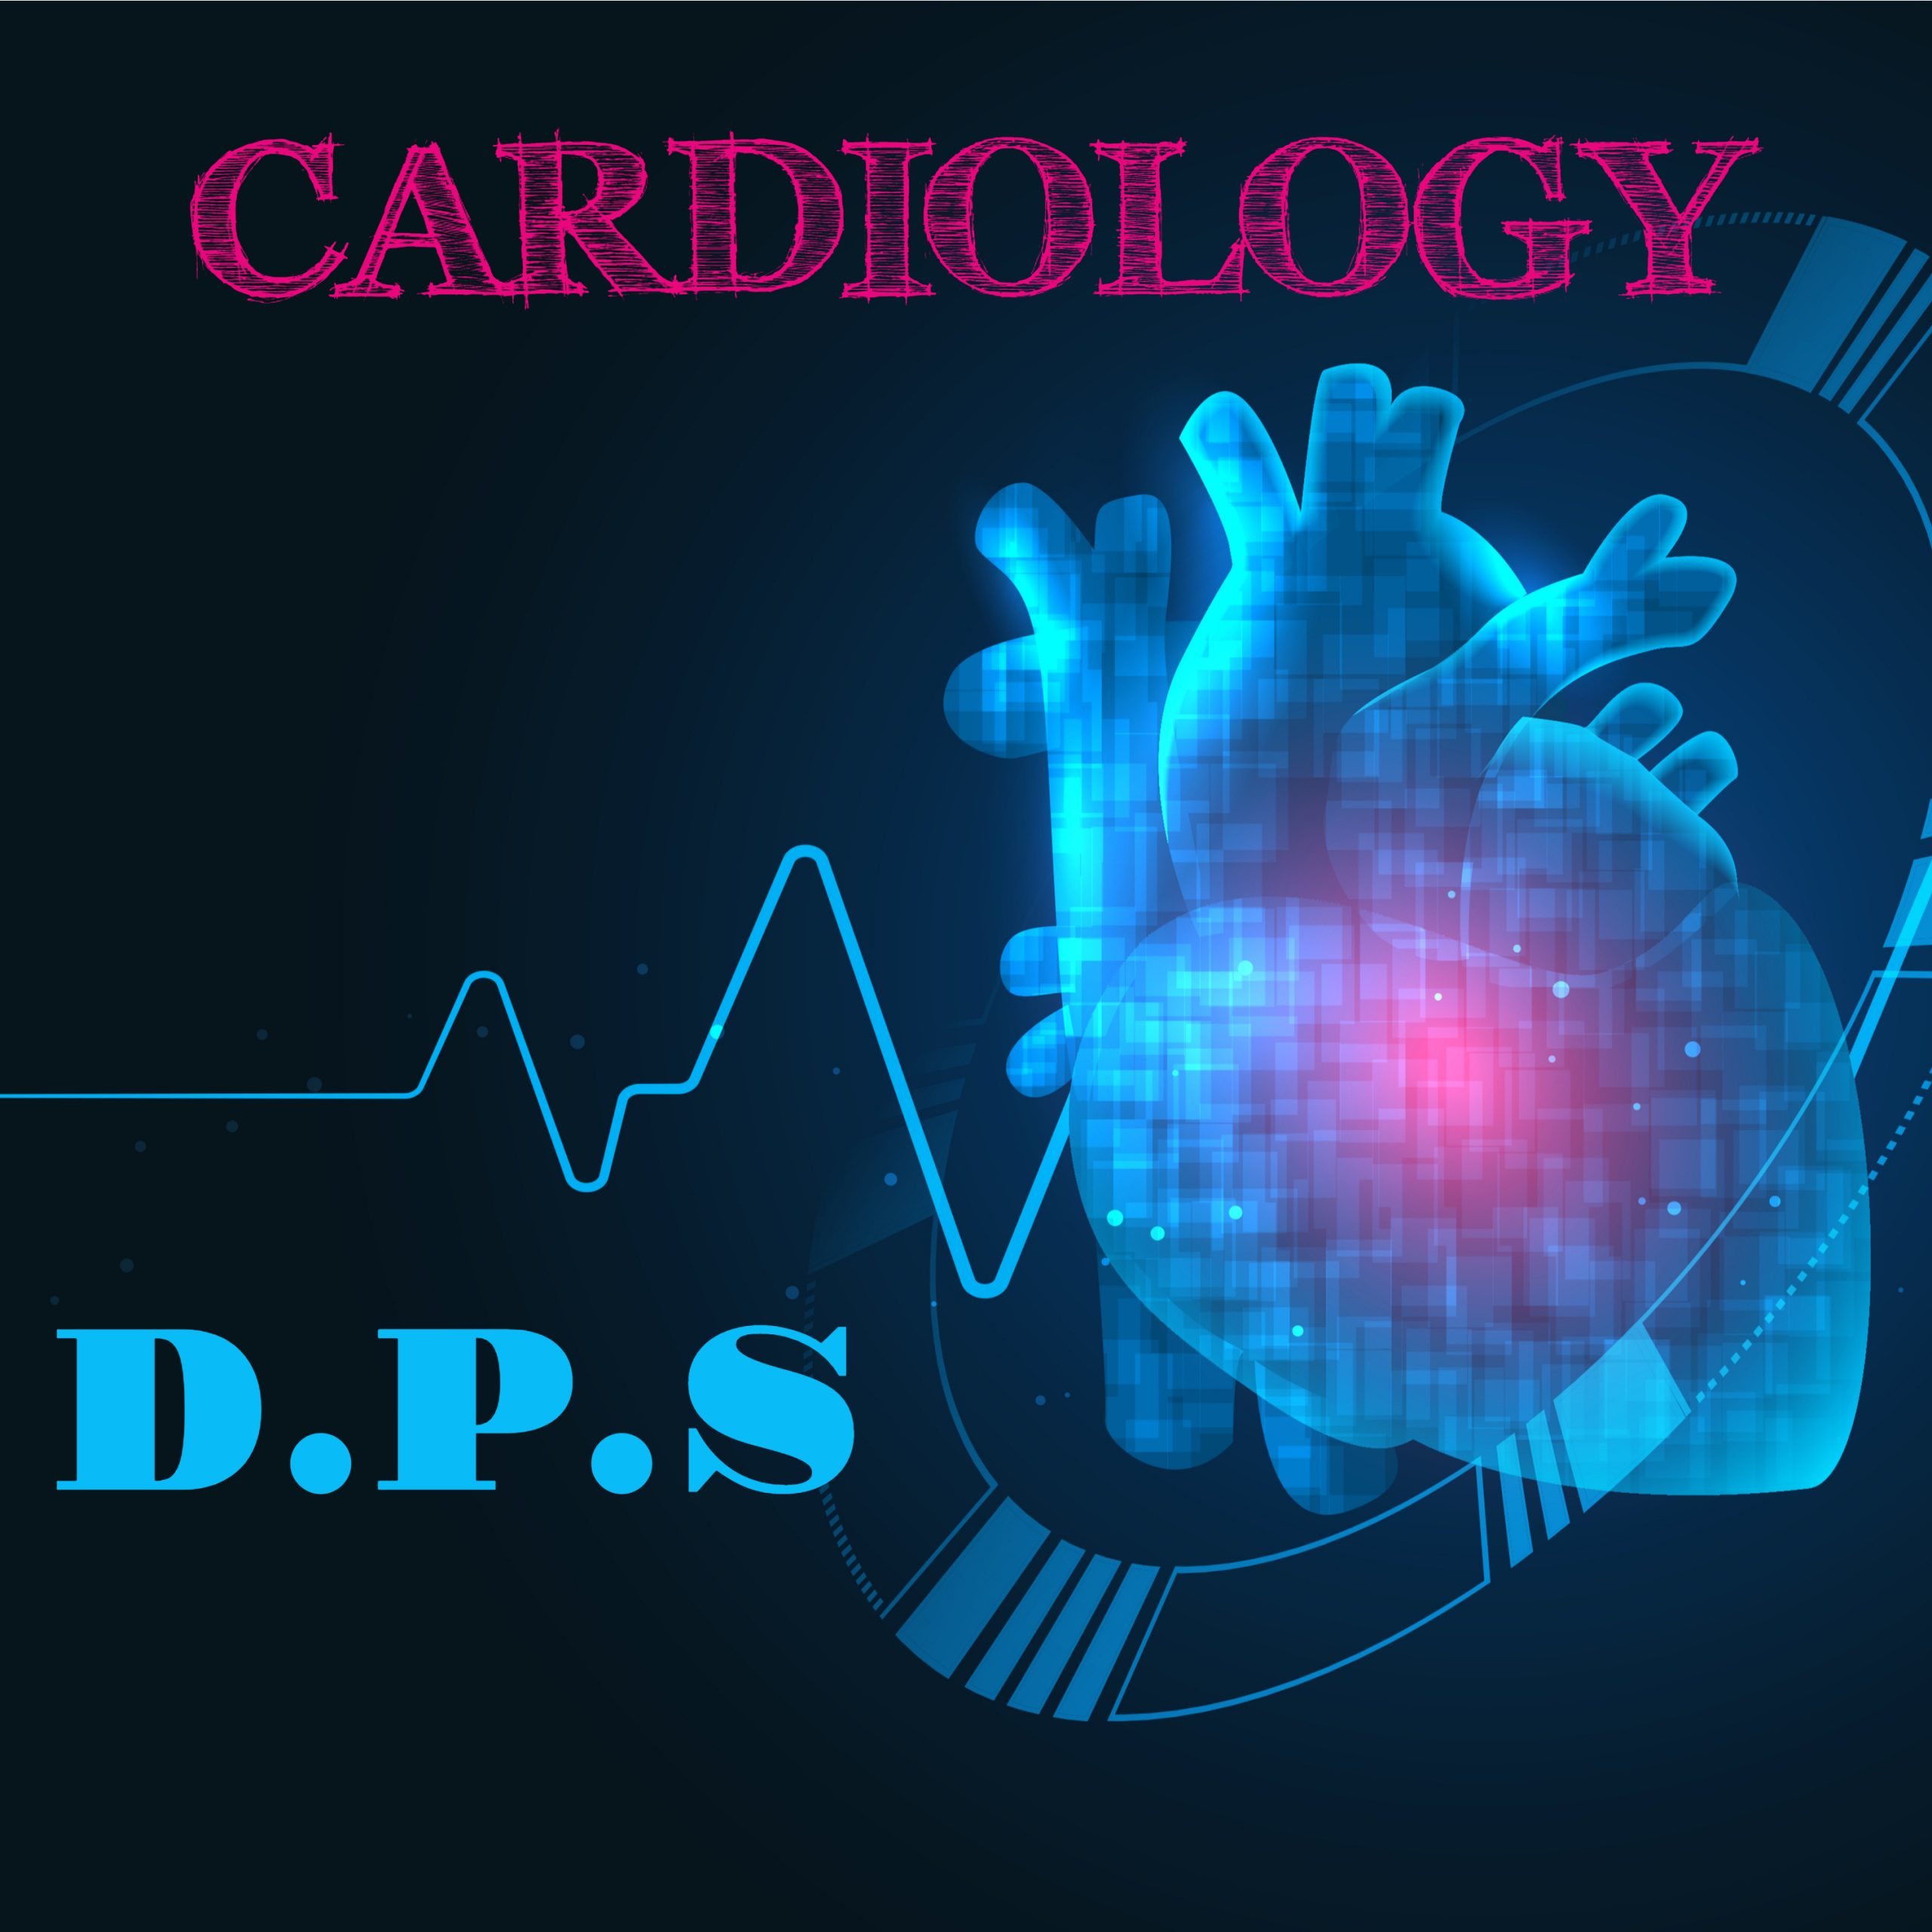 D.P.S Releases His Debut EP Cardiology